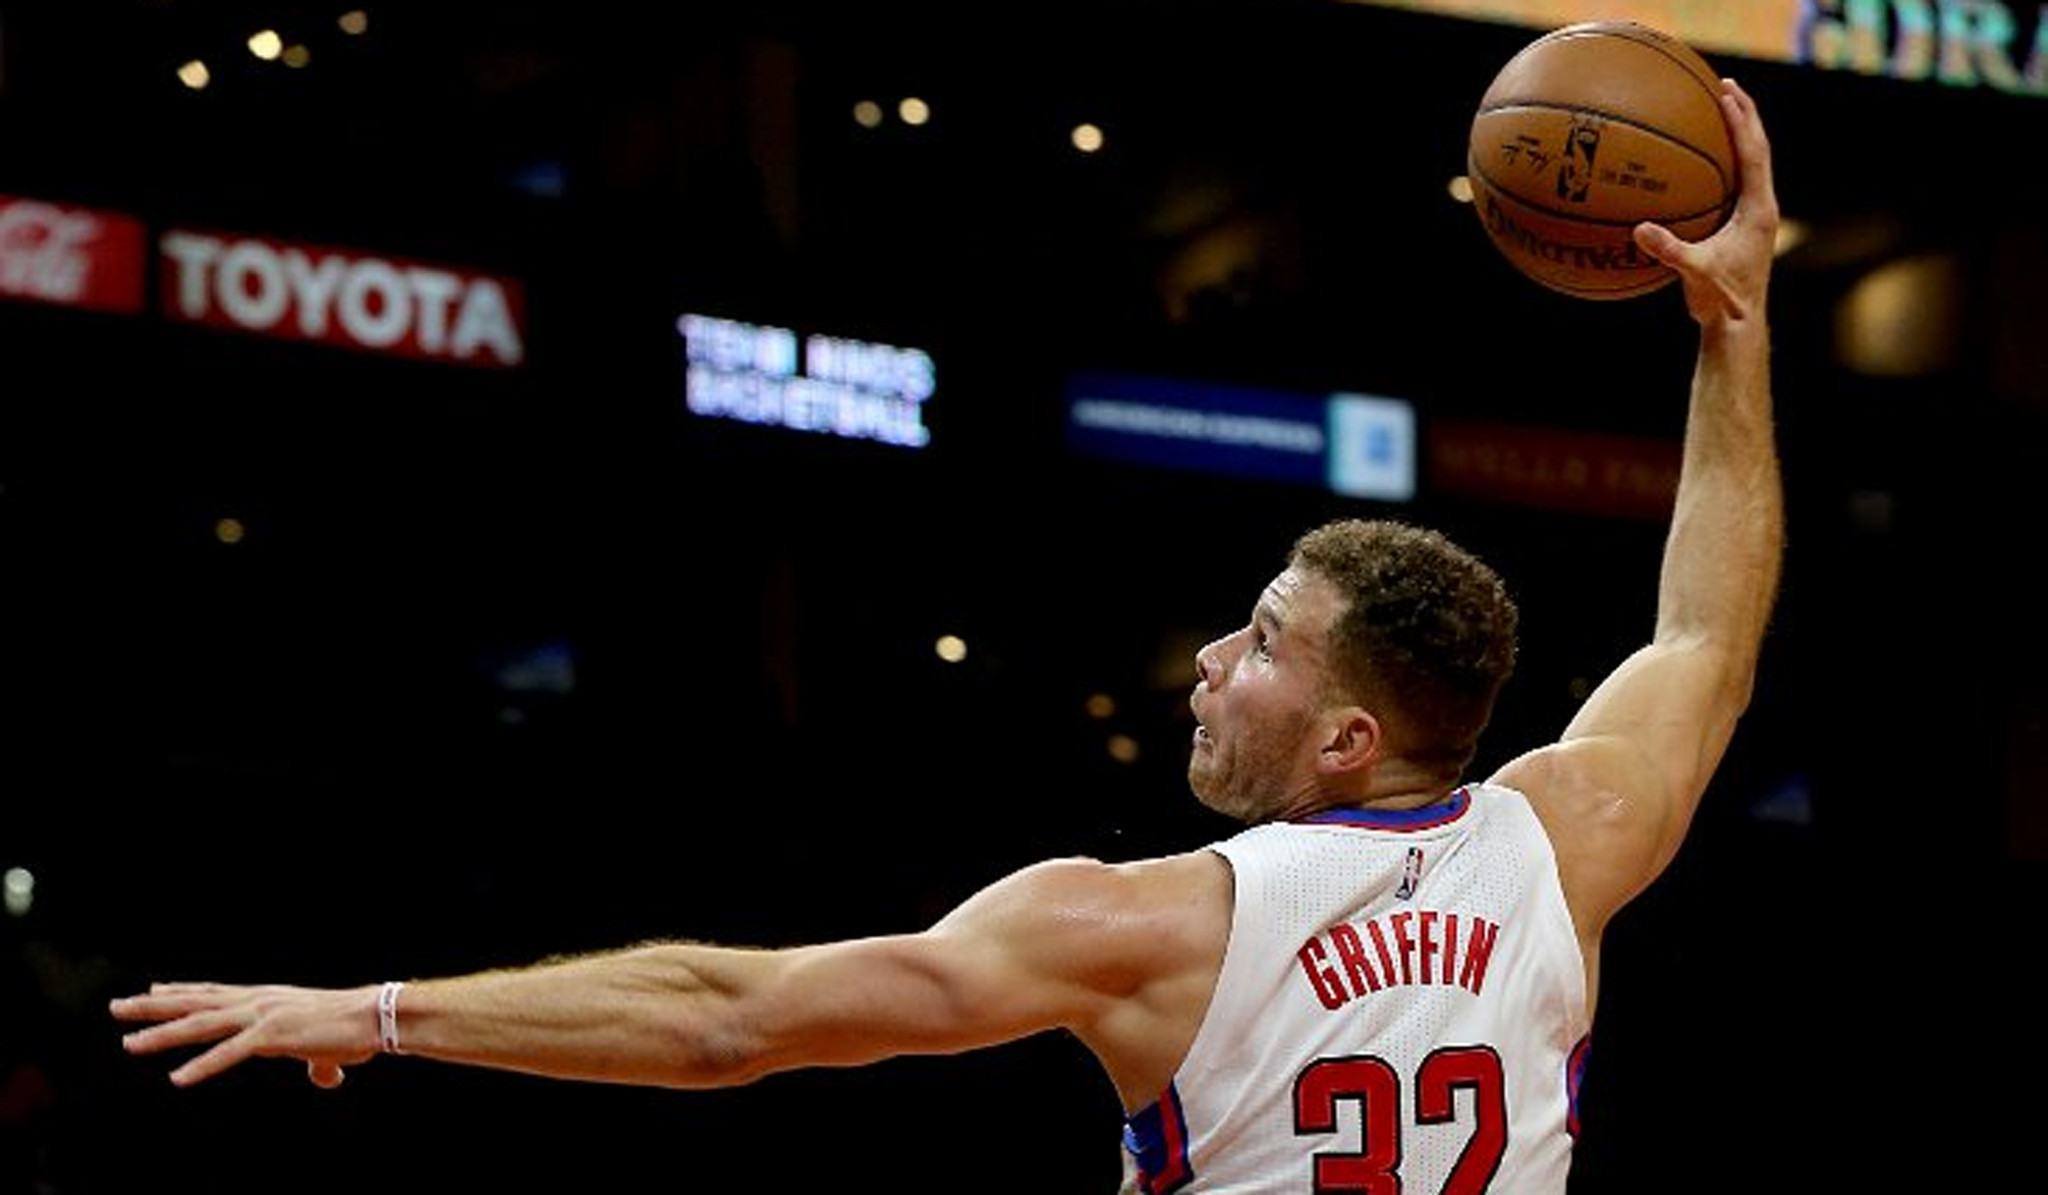 La clippers the impact of blake griffins surgery on the team foxsports com - Clippers Blake Griffin Could Be Back Sooner According To Doctor La Times